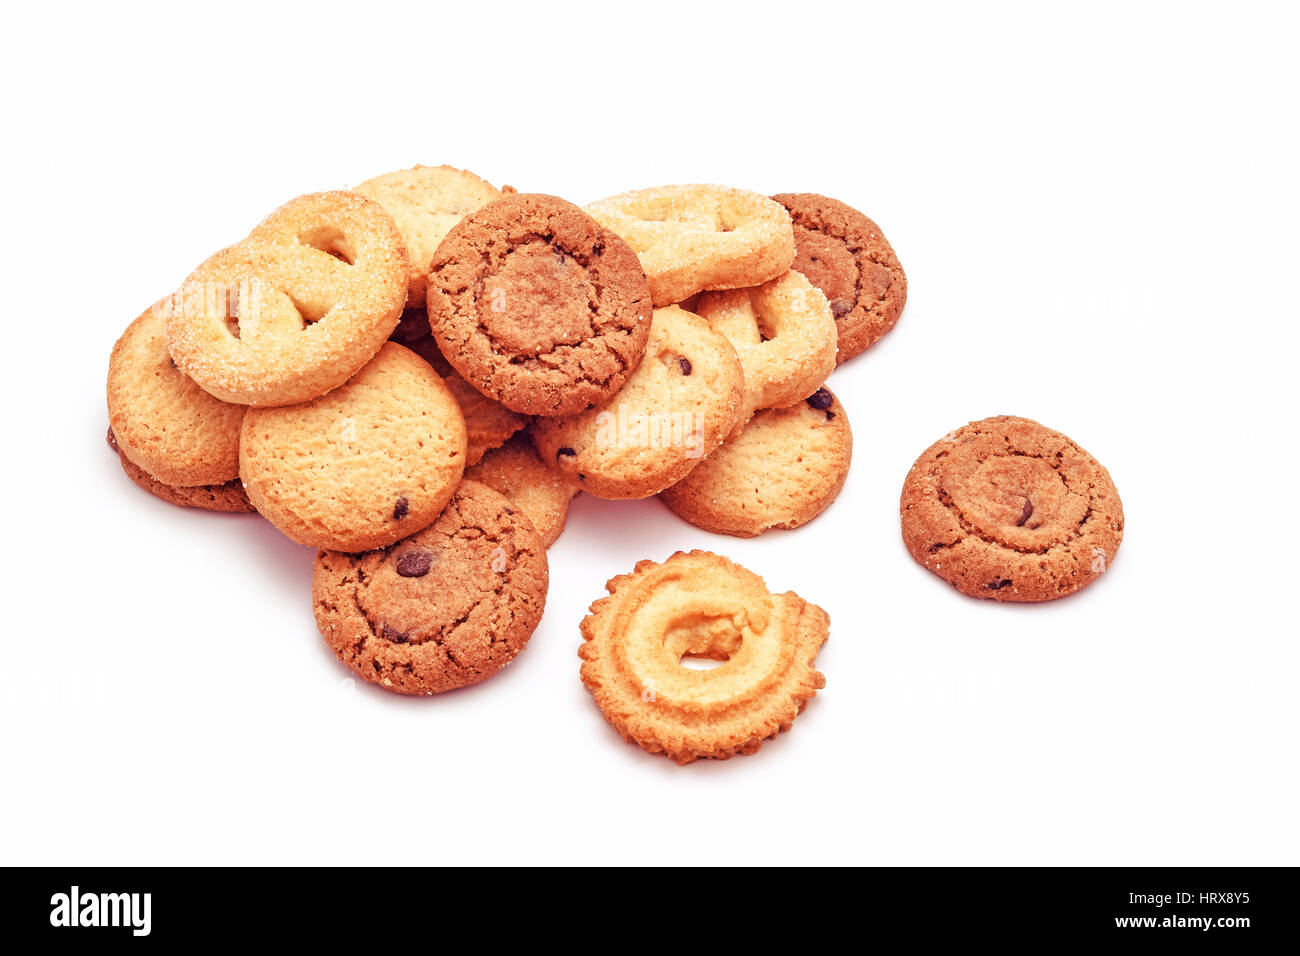 sweet biscuits variation isolated on white - Stock Image